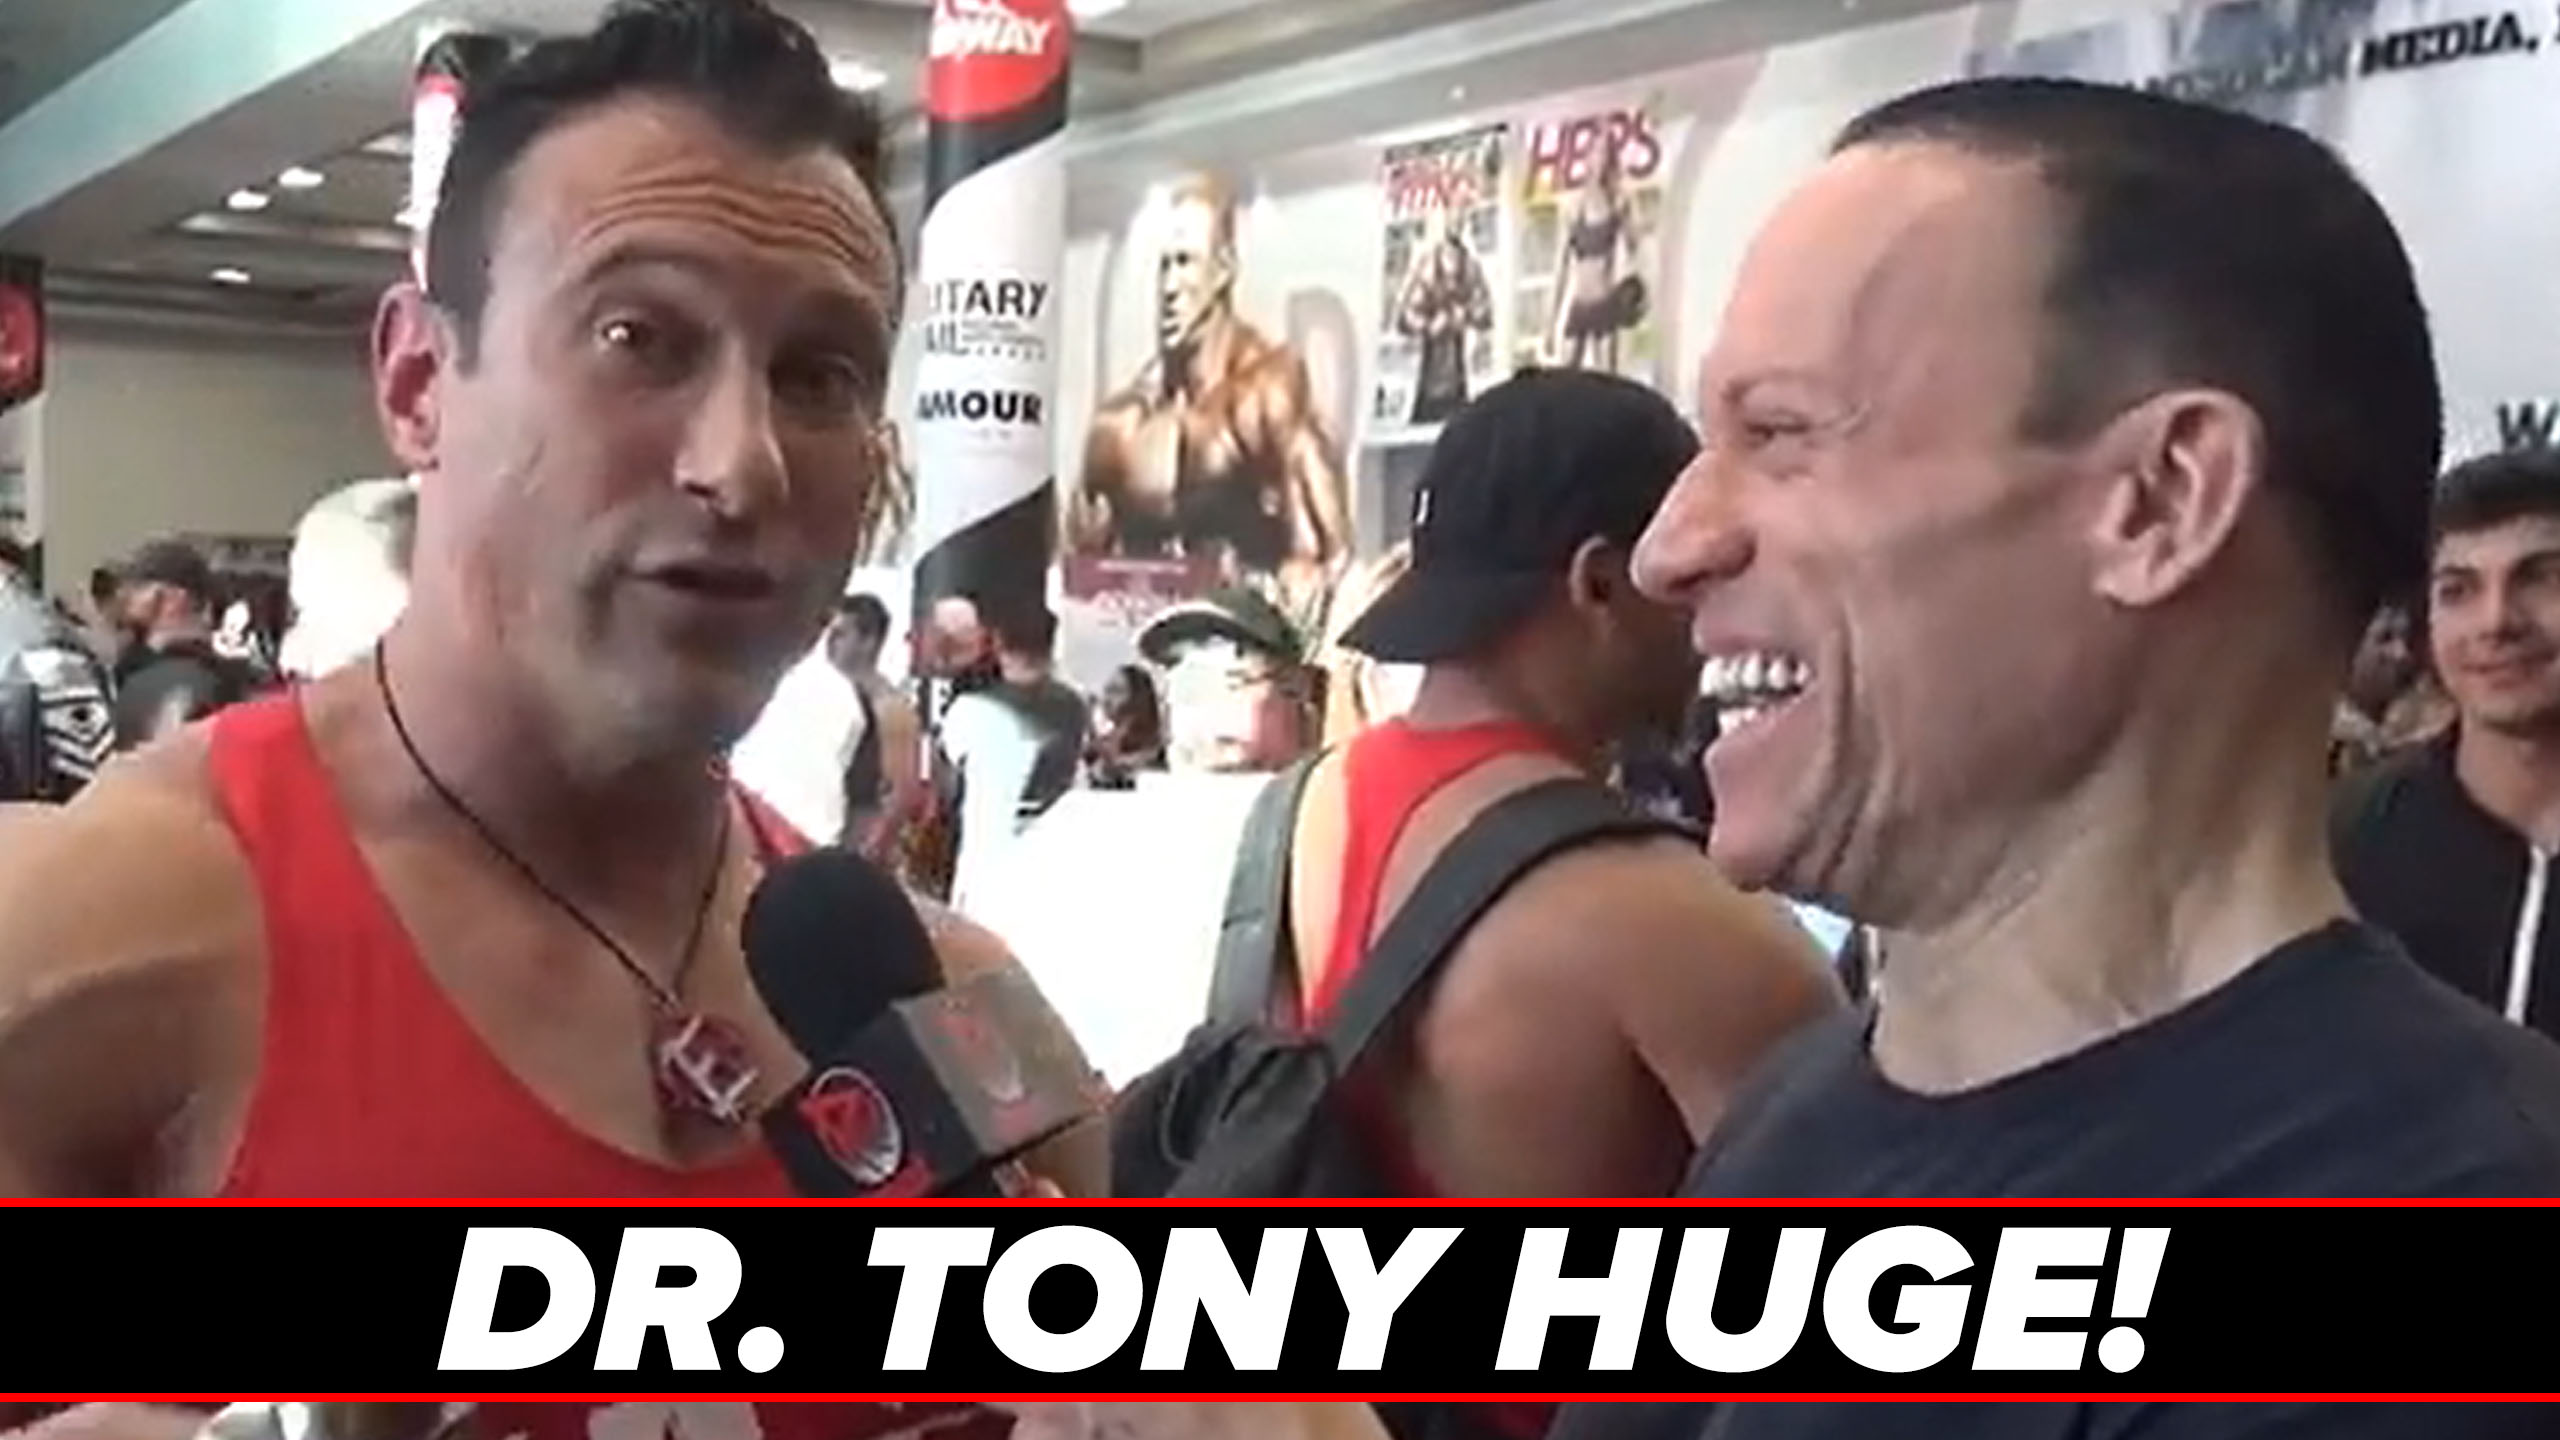 dr tony huge interview olympia 2018